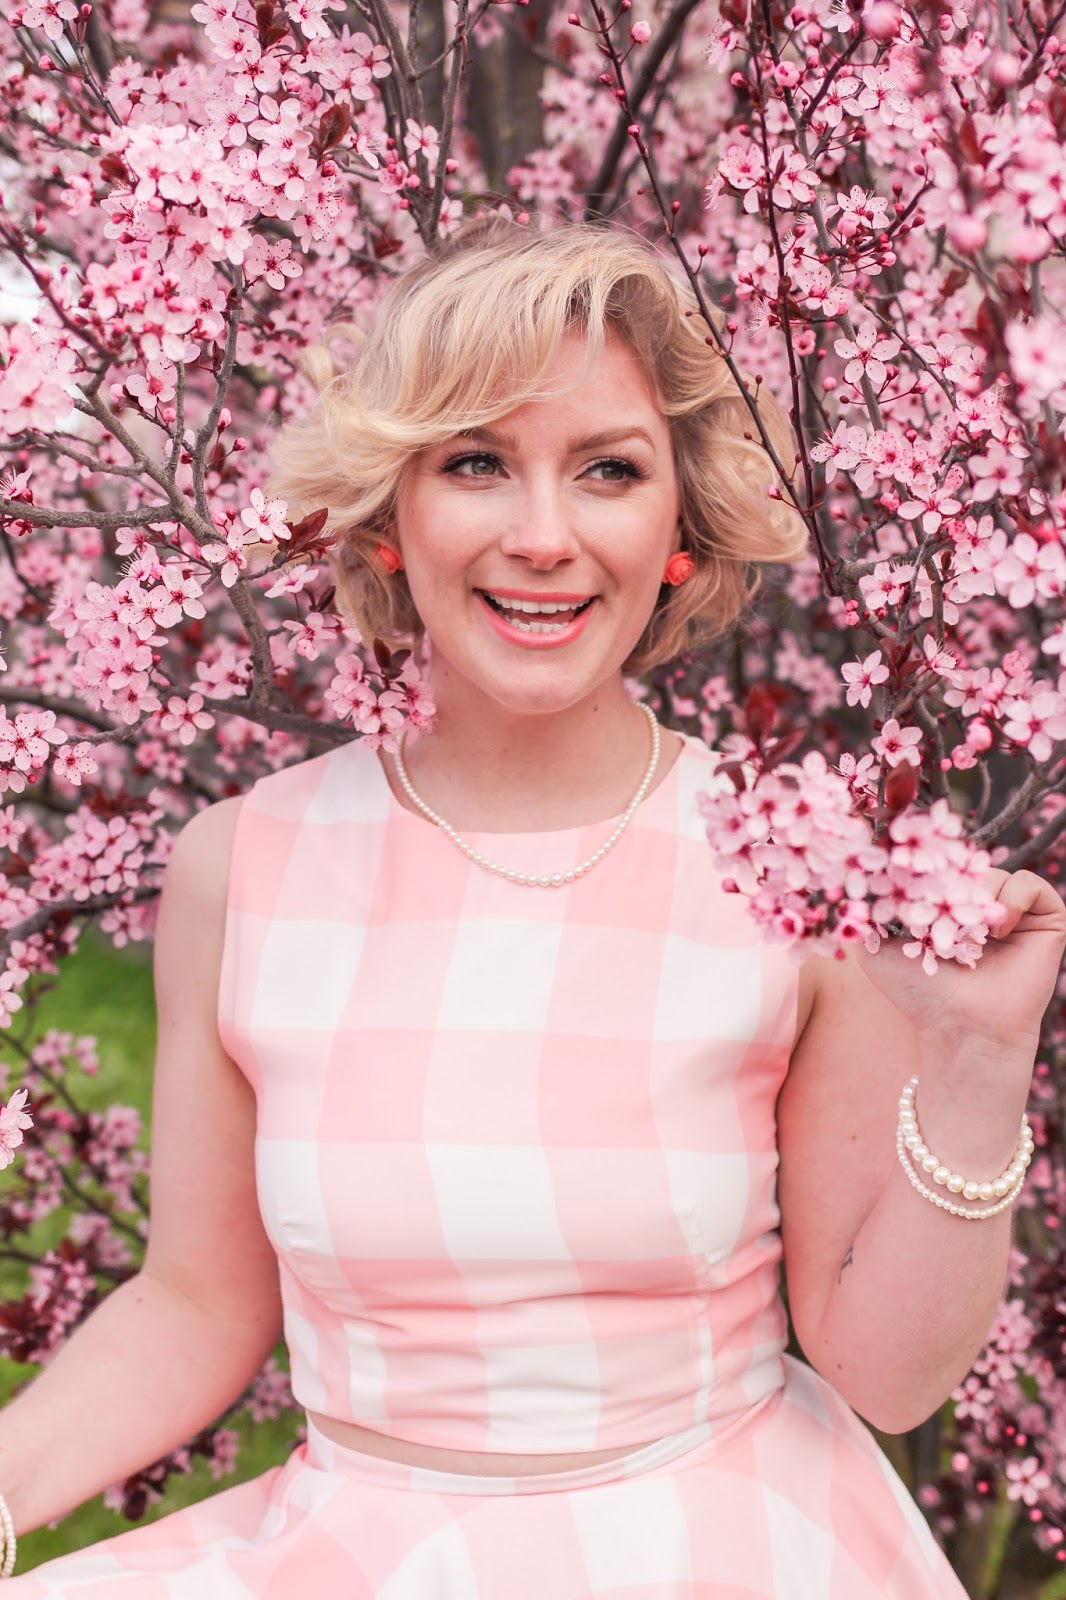 @findingfemme in pink gingham Chicwish crop top and skirt set, enjoying spring cherry blossoms.